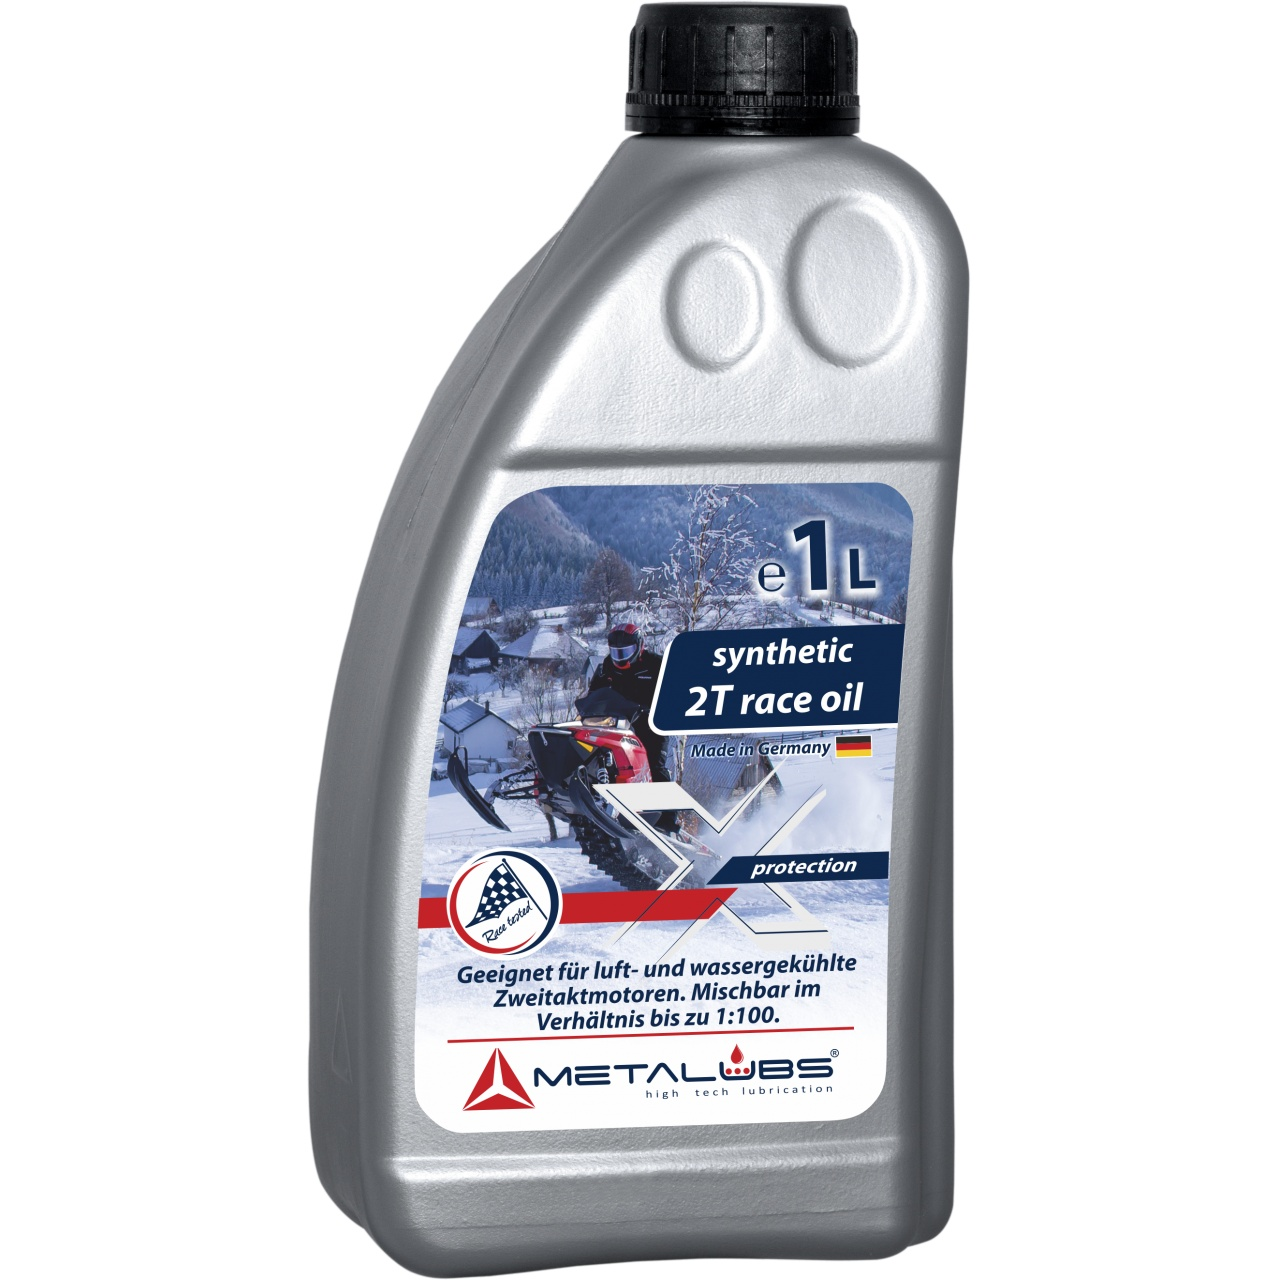 Metalubs 2T Synthetic Race Oil 1l